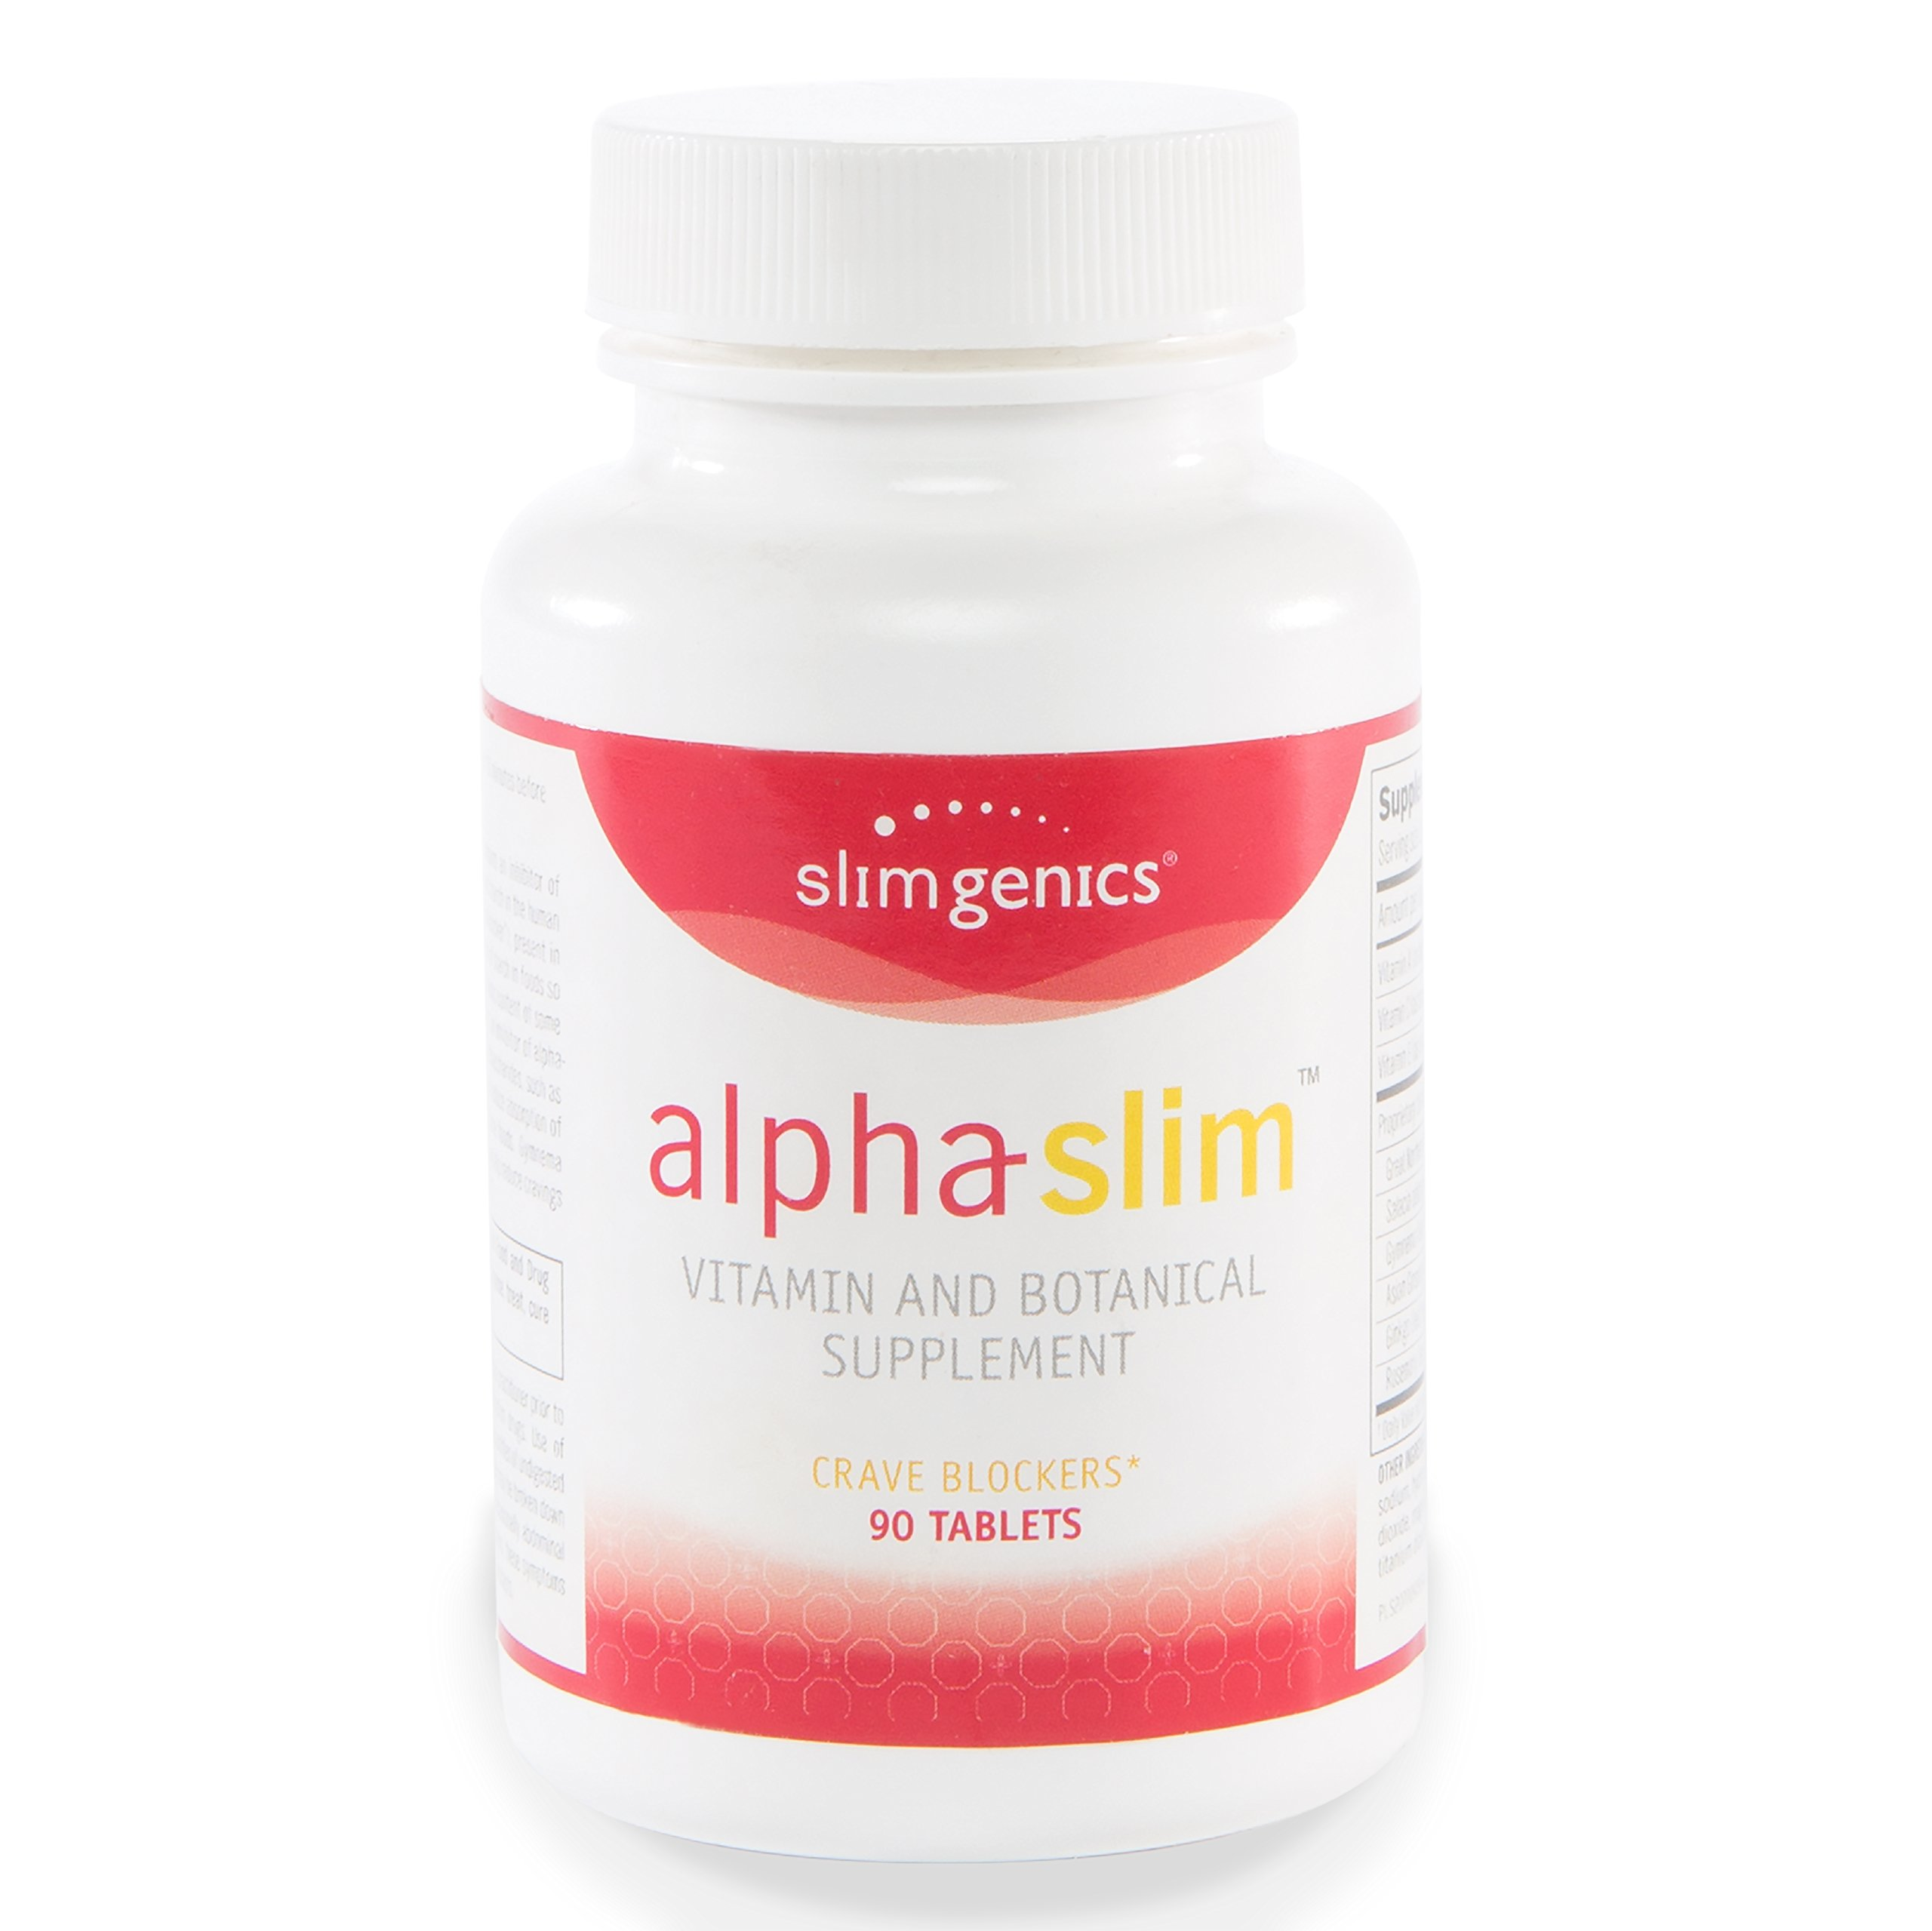 SlimGenics Alpha-Slim ™ | Carb Blocker, Block Up To 300 Calories Per Meal - Reduce Cravings, Increase Fat Burning, Includes White Kidney Bean Extract - Promotes Healthy Weight Loss (90 Count) by SlimGenics